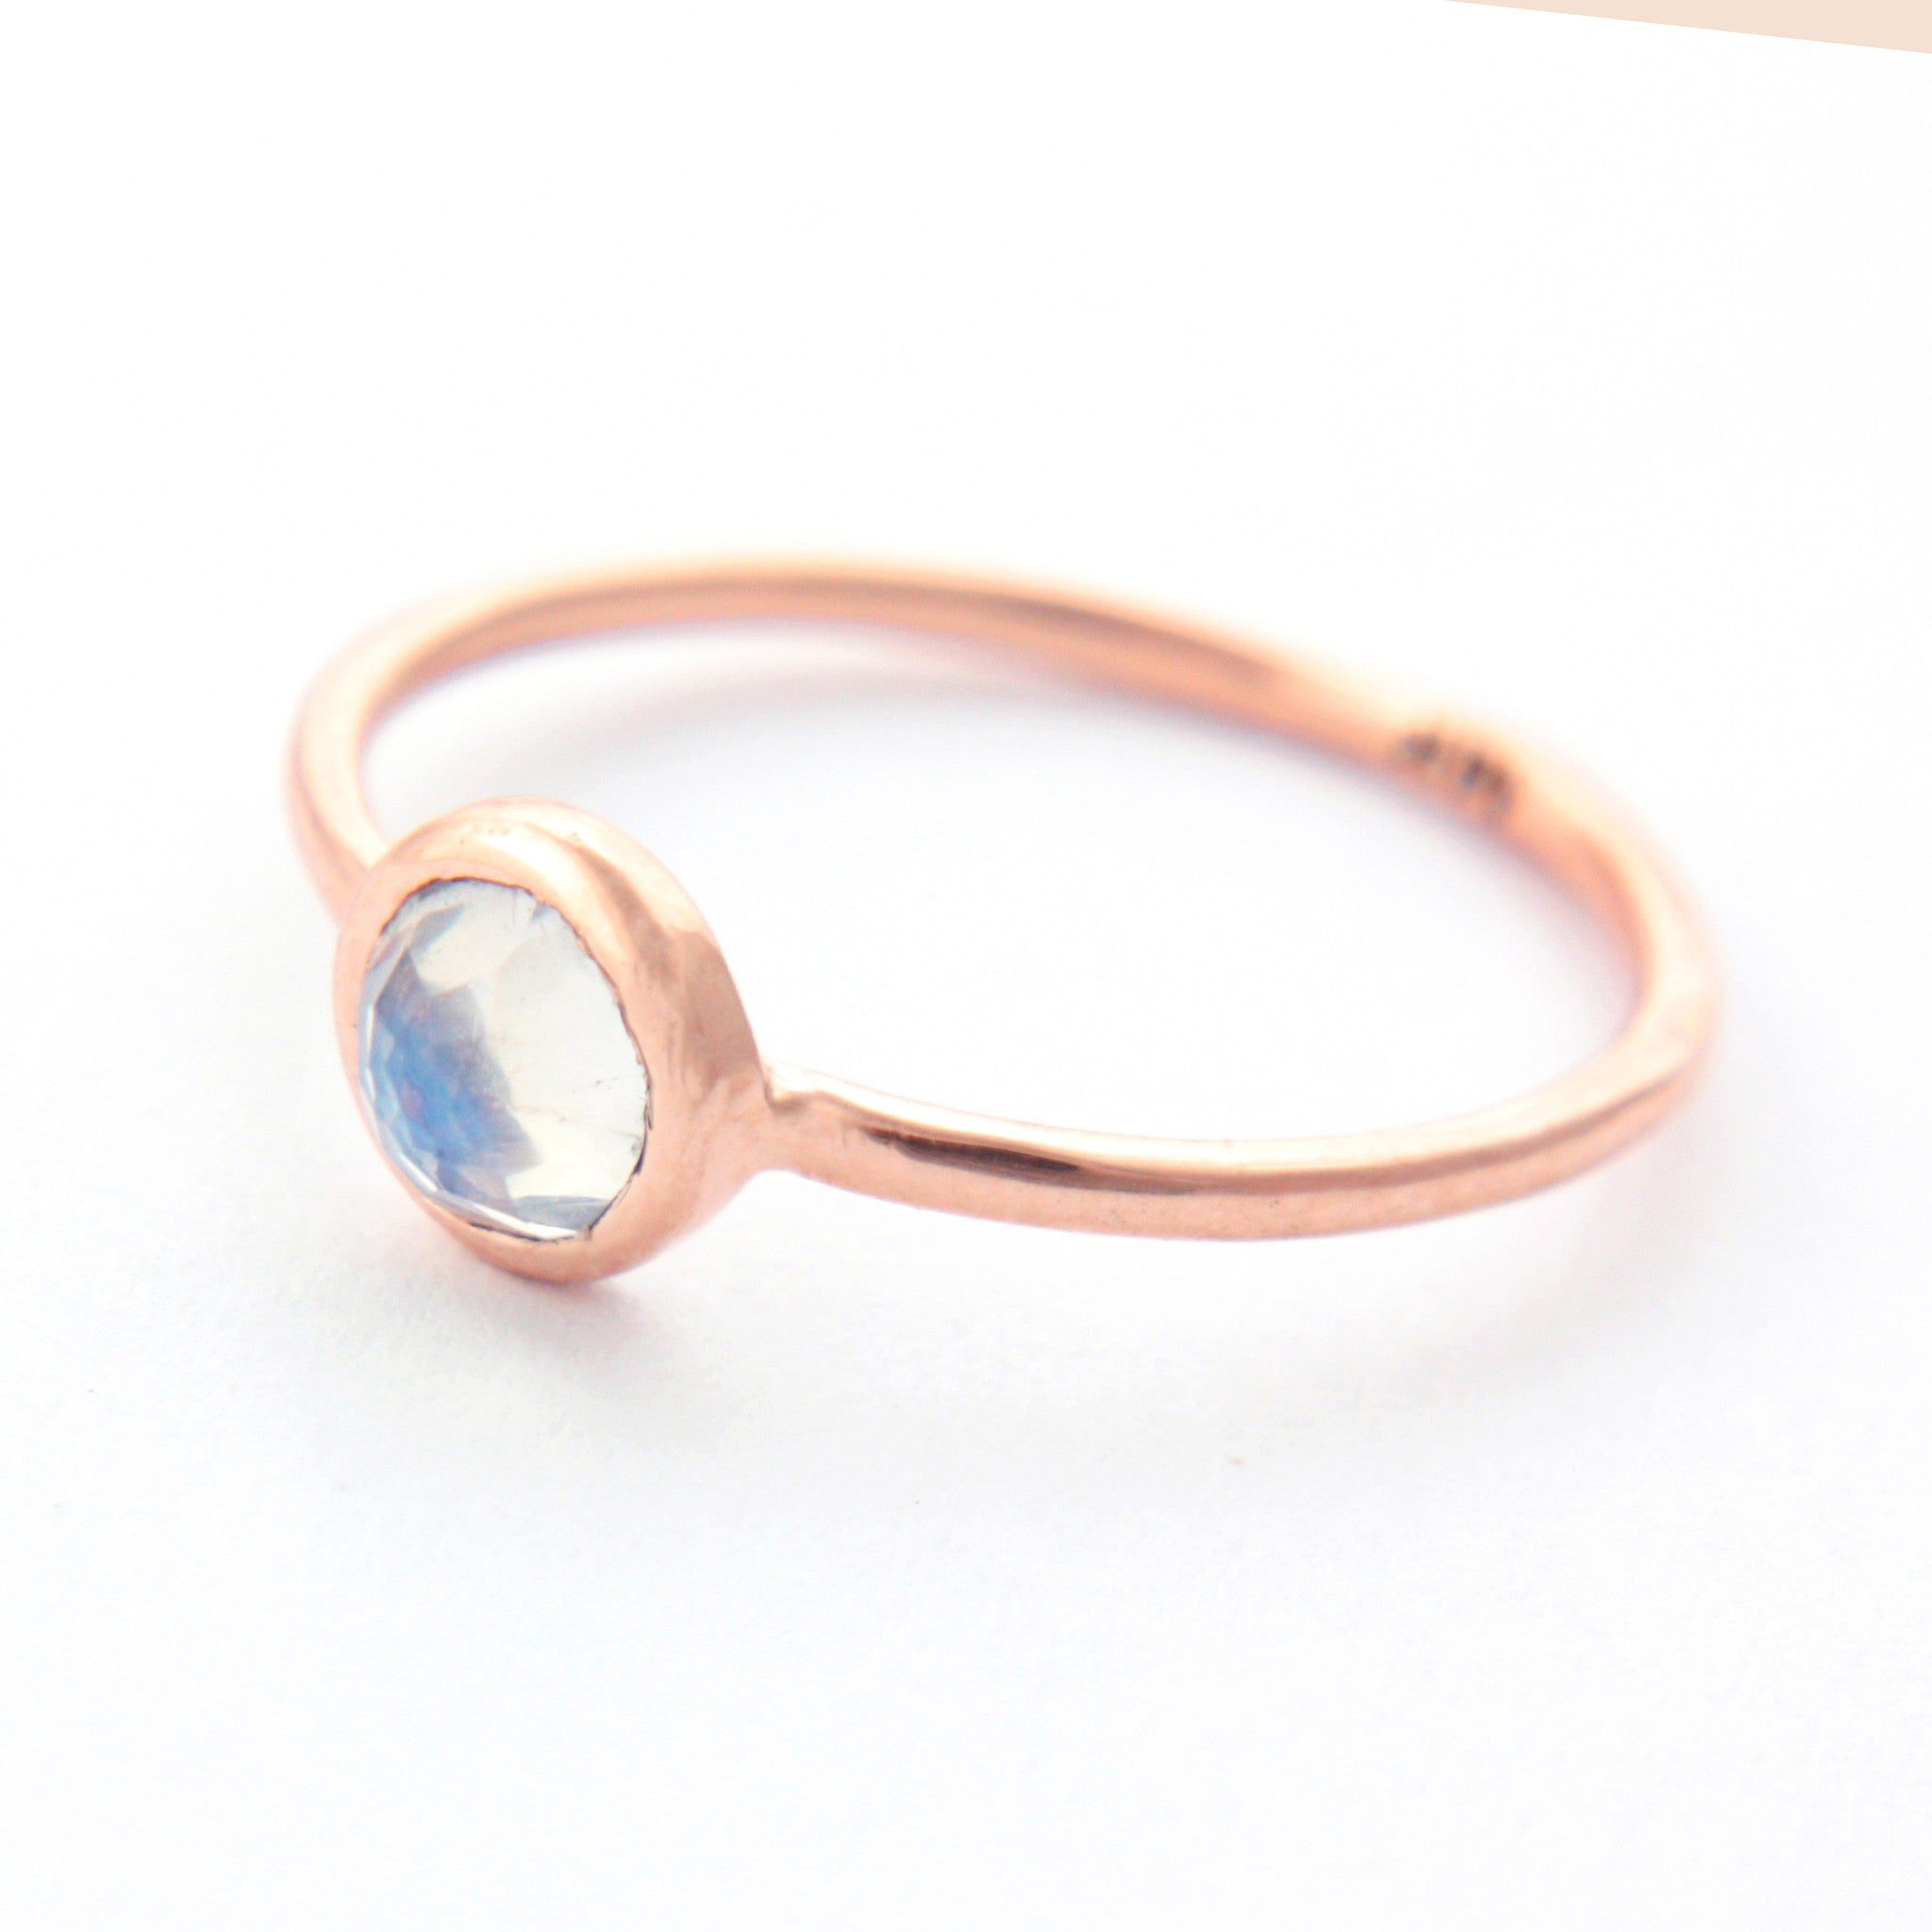 Rose Cut Moonstone Gold Ring 14k Gold - Manari Design